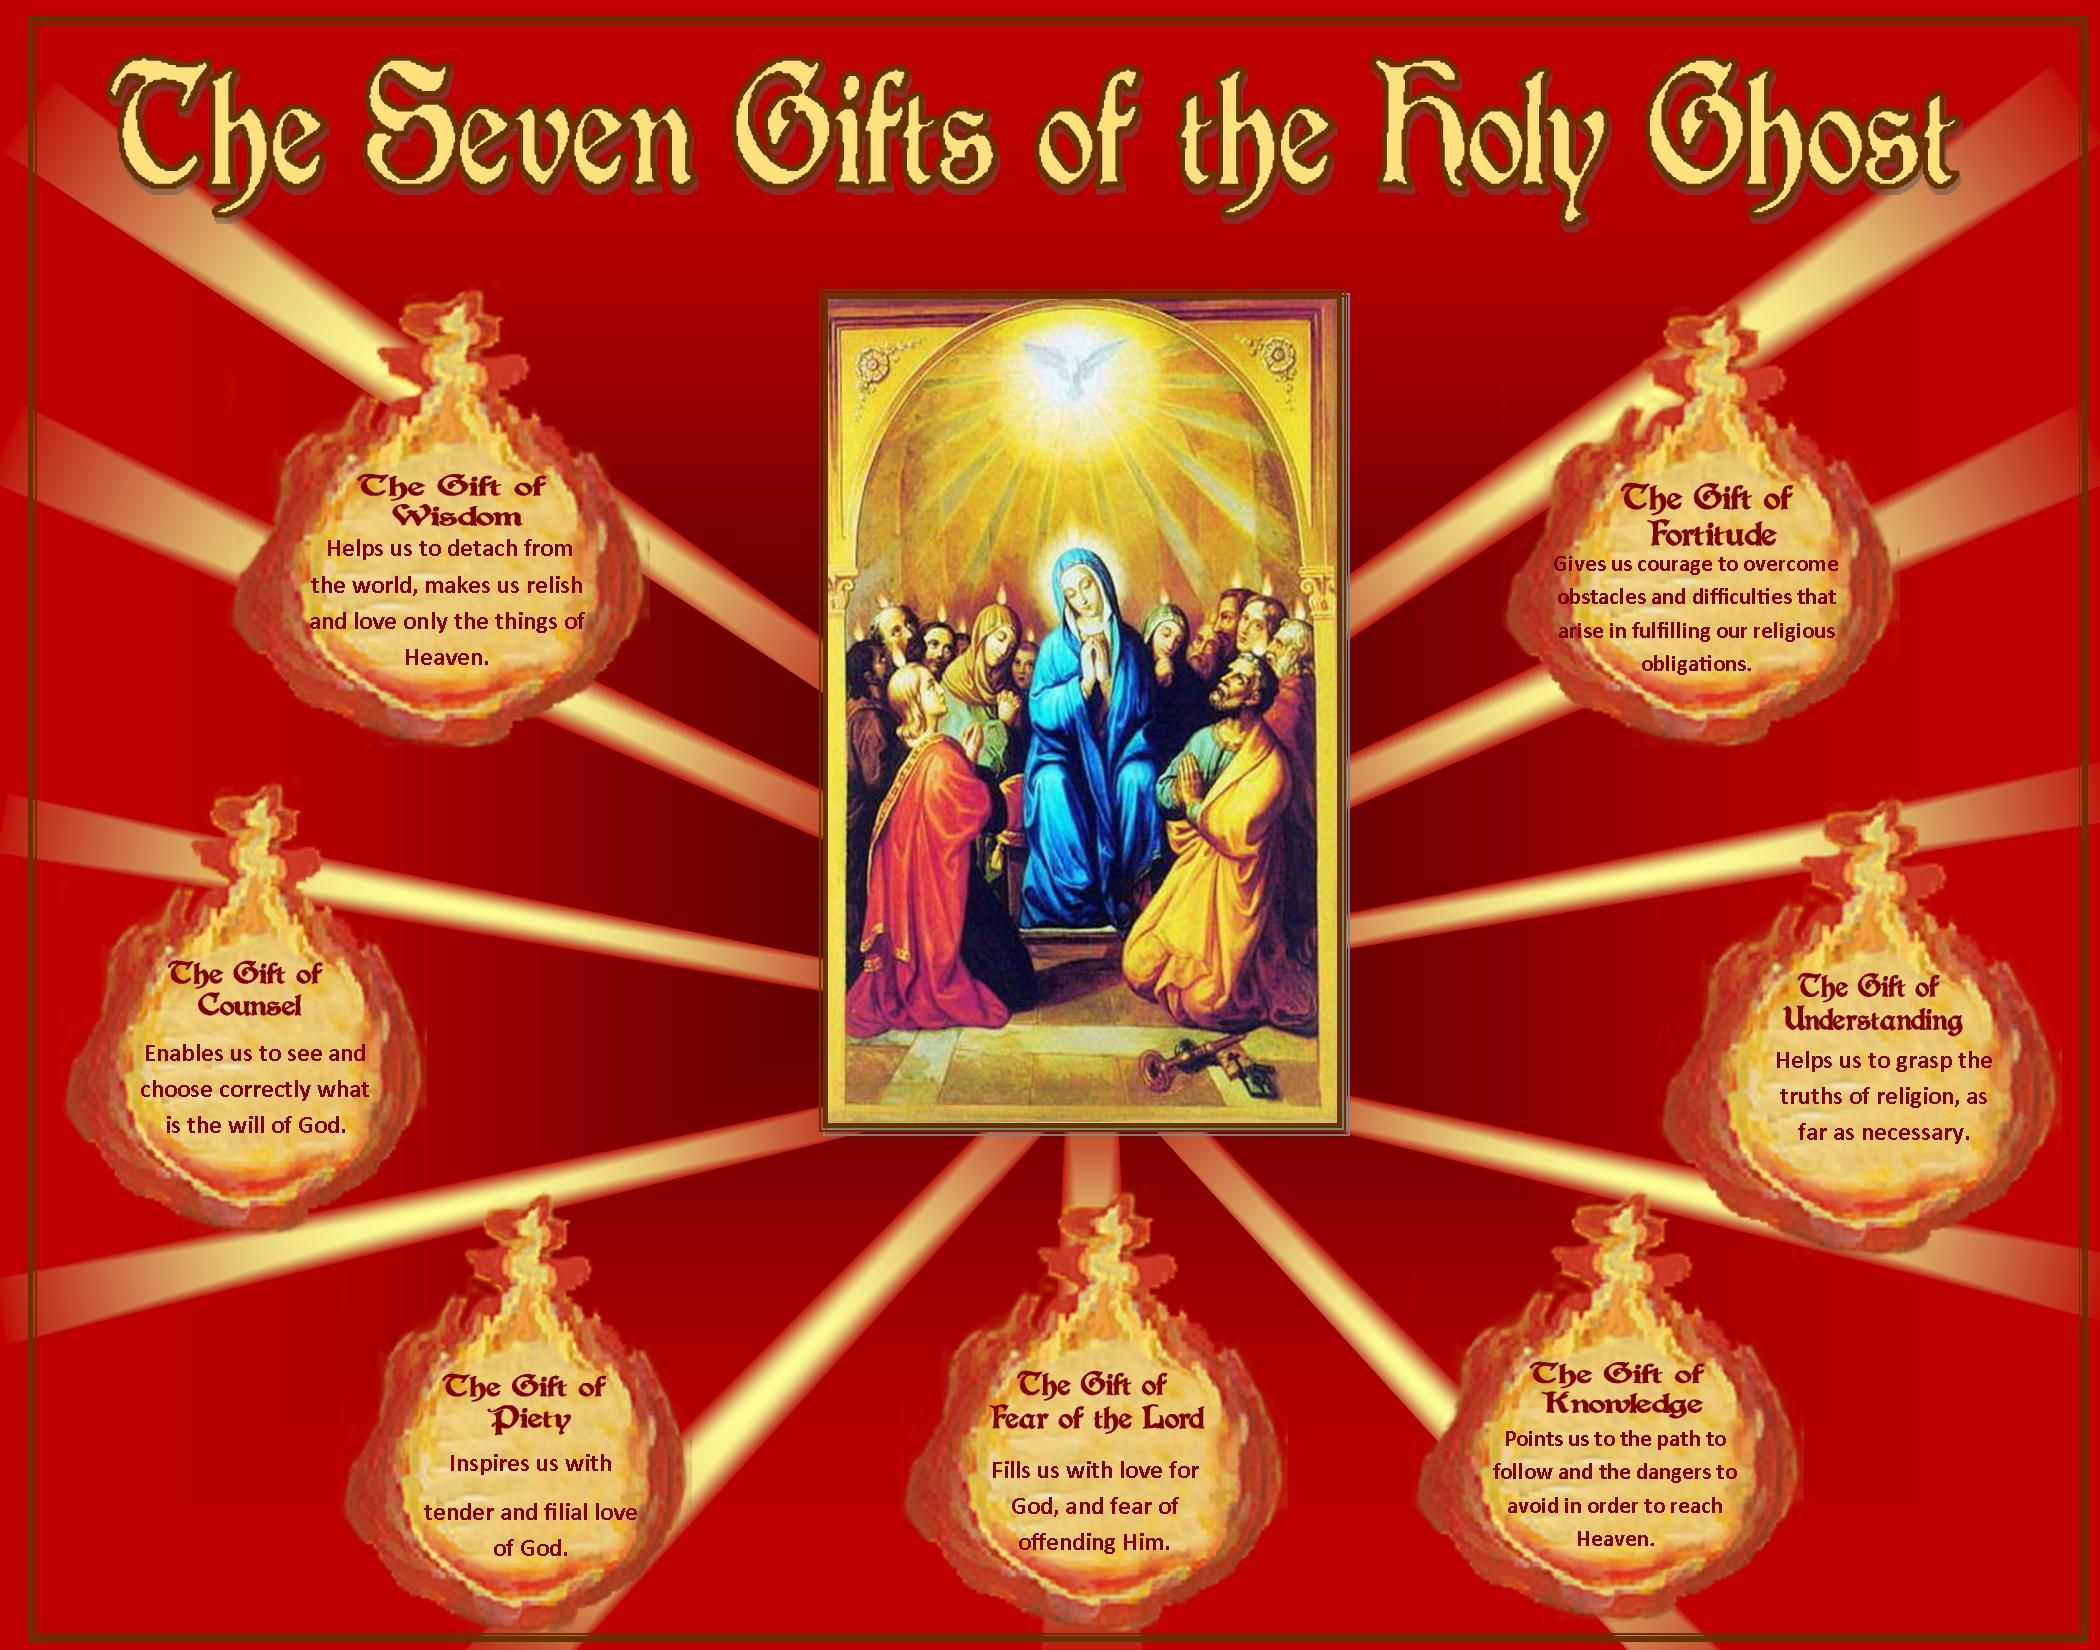 10 best images about 7 gifts of the Holy Spirit on Pinterest ...